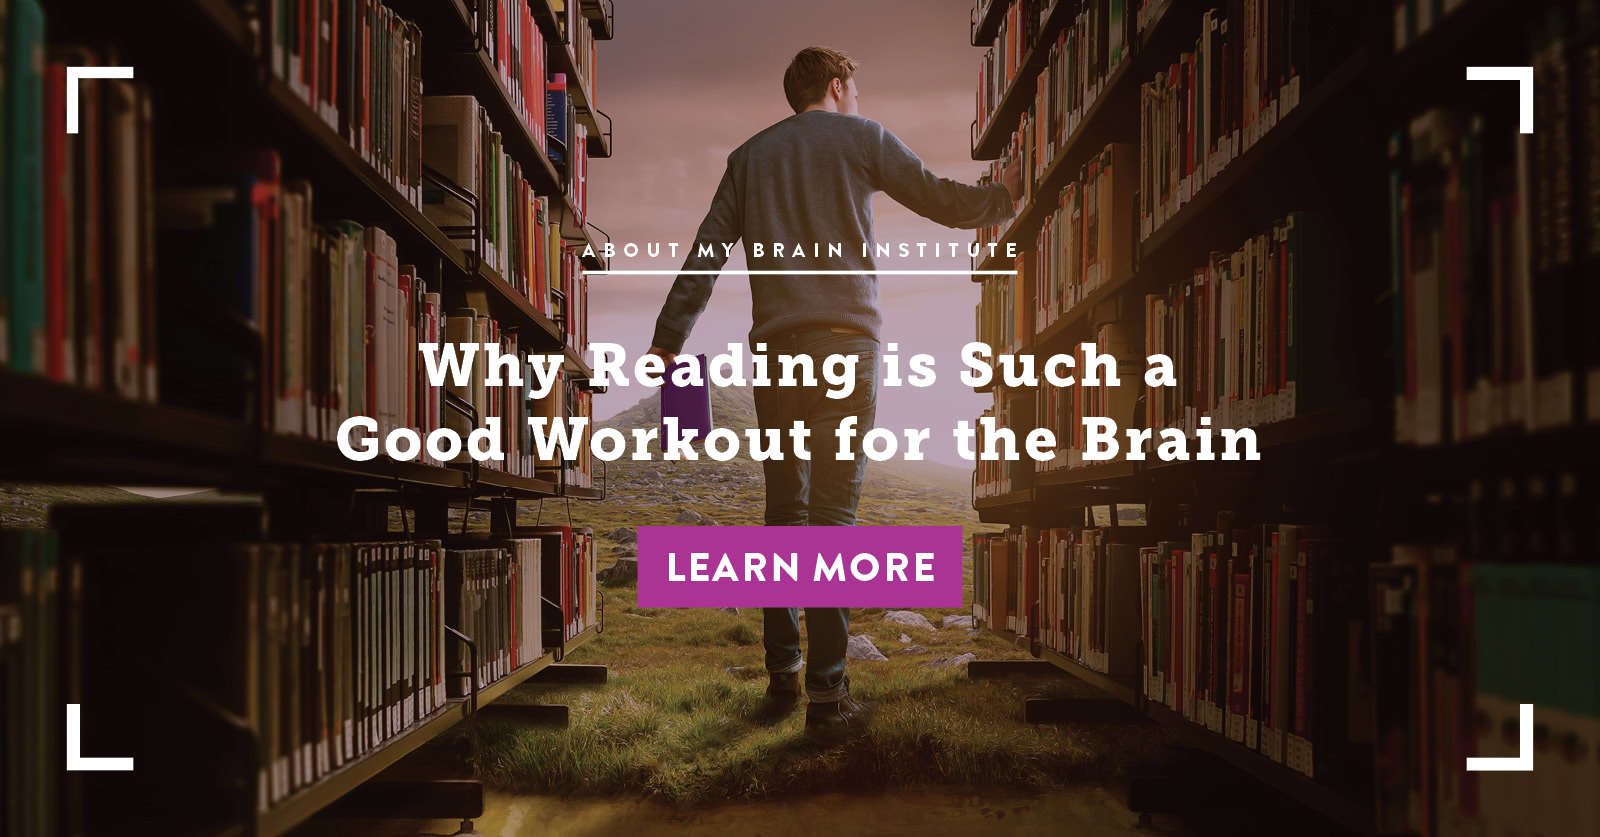 Why Reading is Such a Good Workout for the Brain